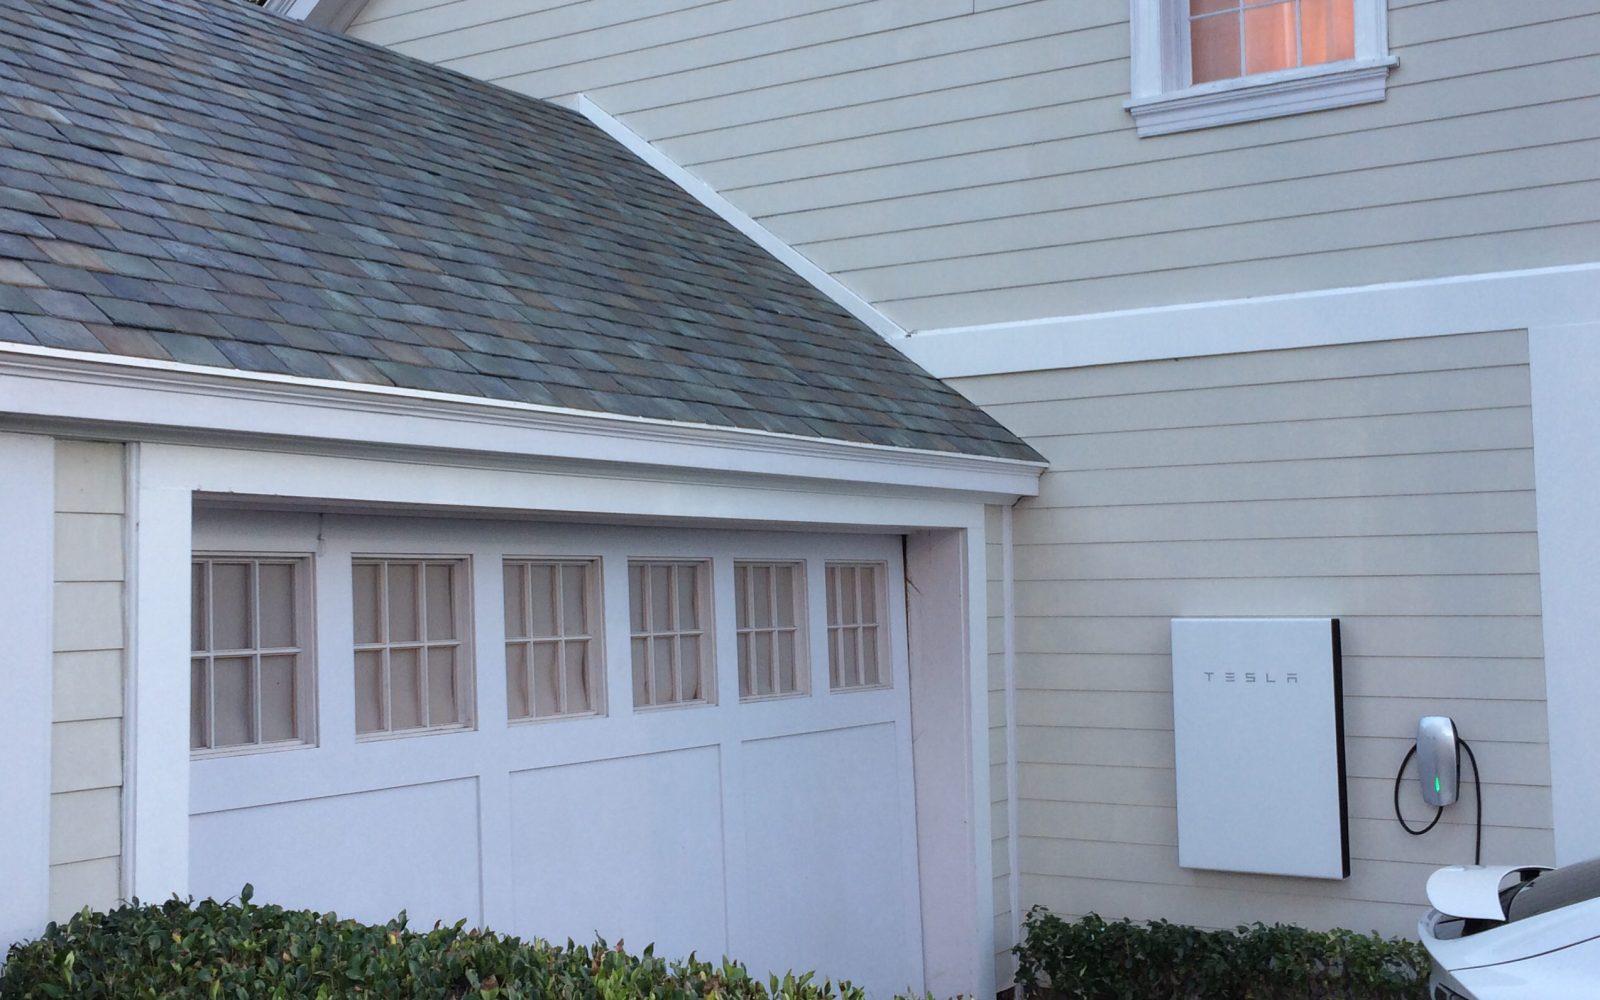 Tesla Powerwall 2 is a game changer in home energy storage: 14 kWh w/ inverter for $5,500